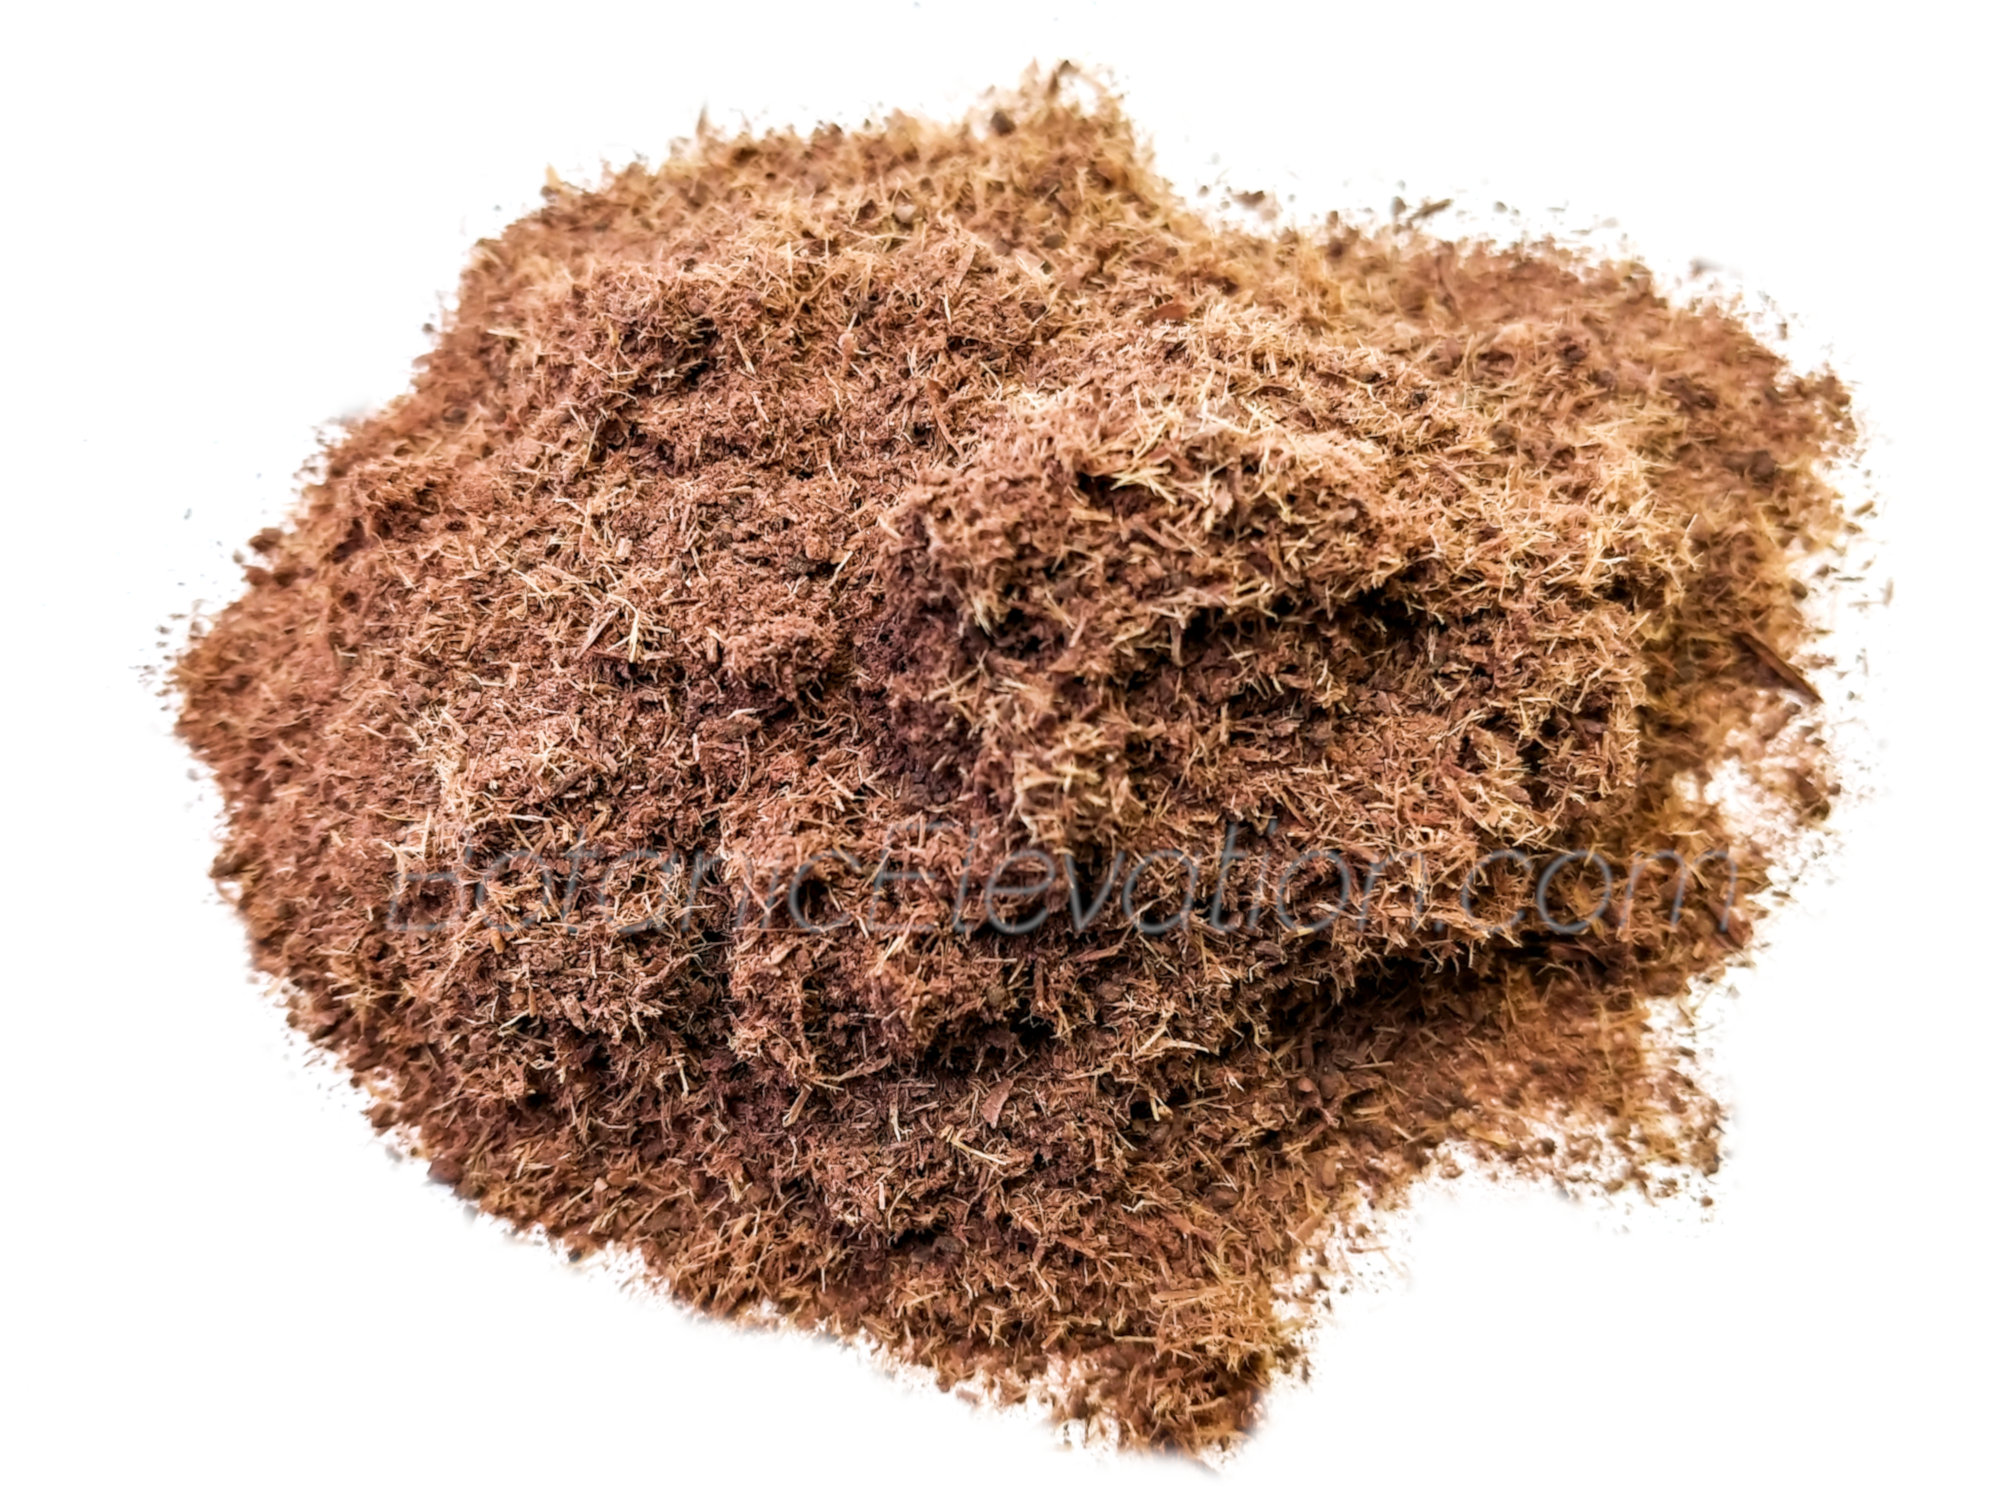 mimosa hostilis (MHRB) powdered root bark